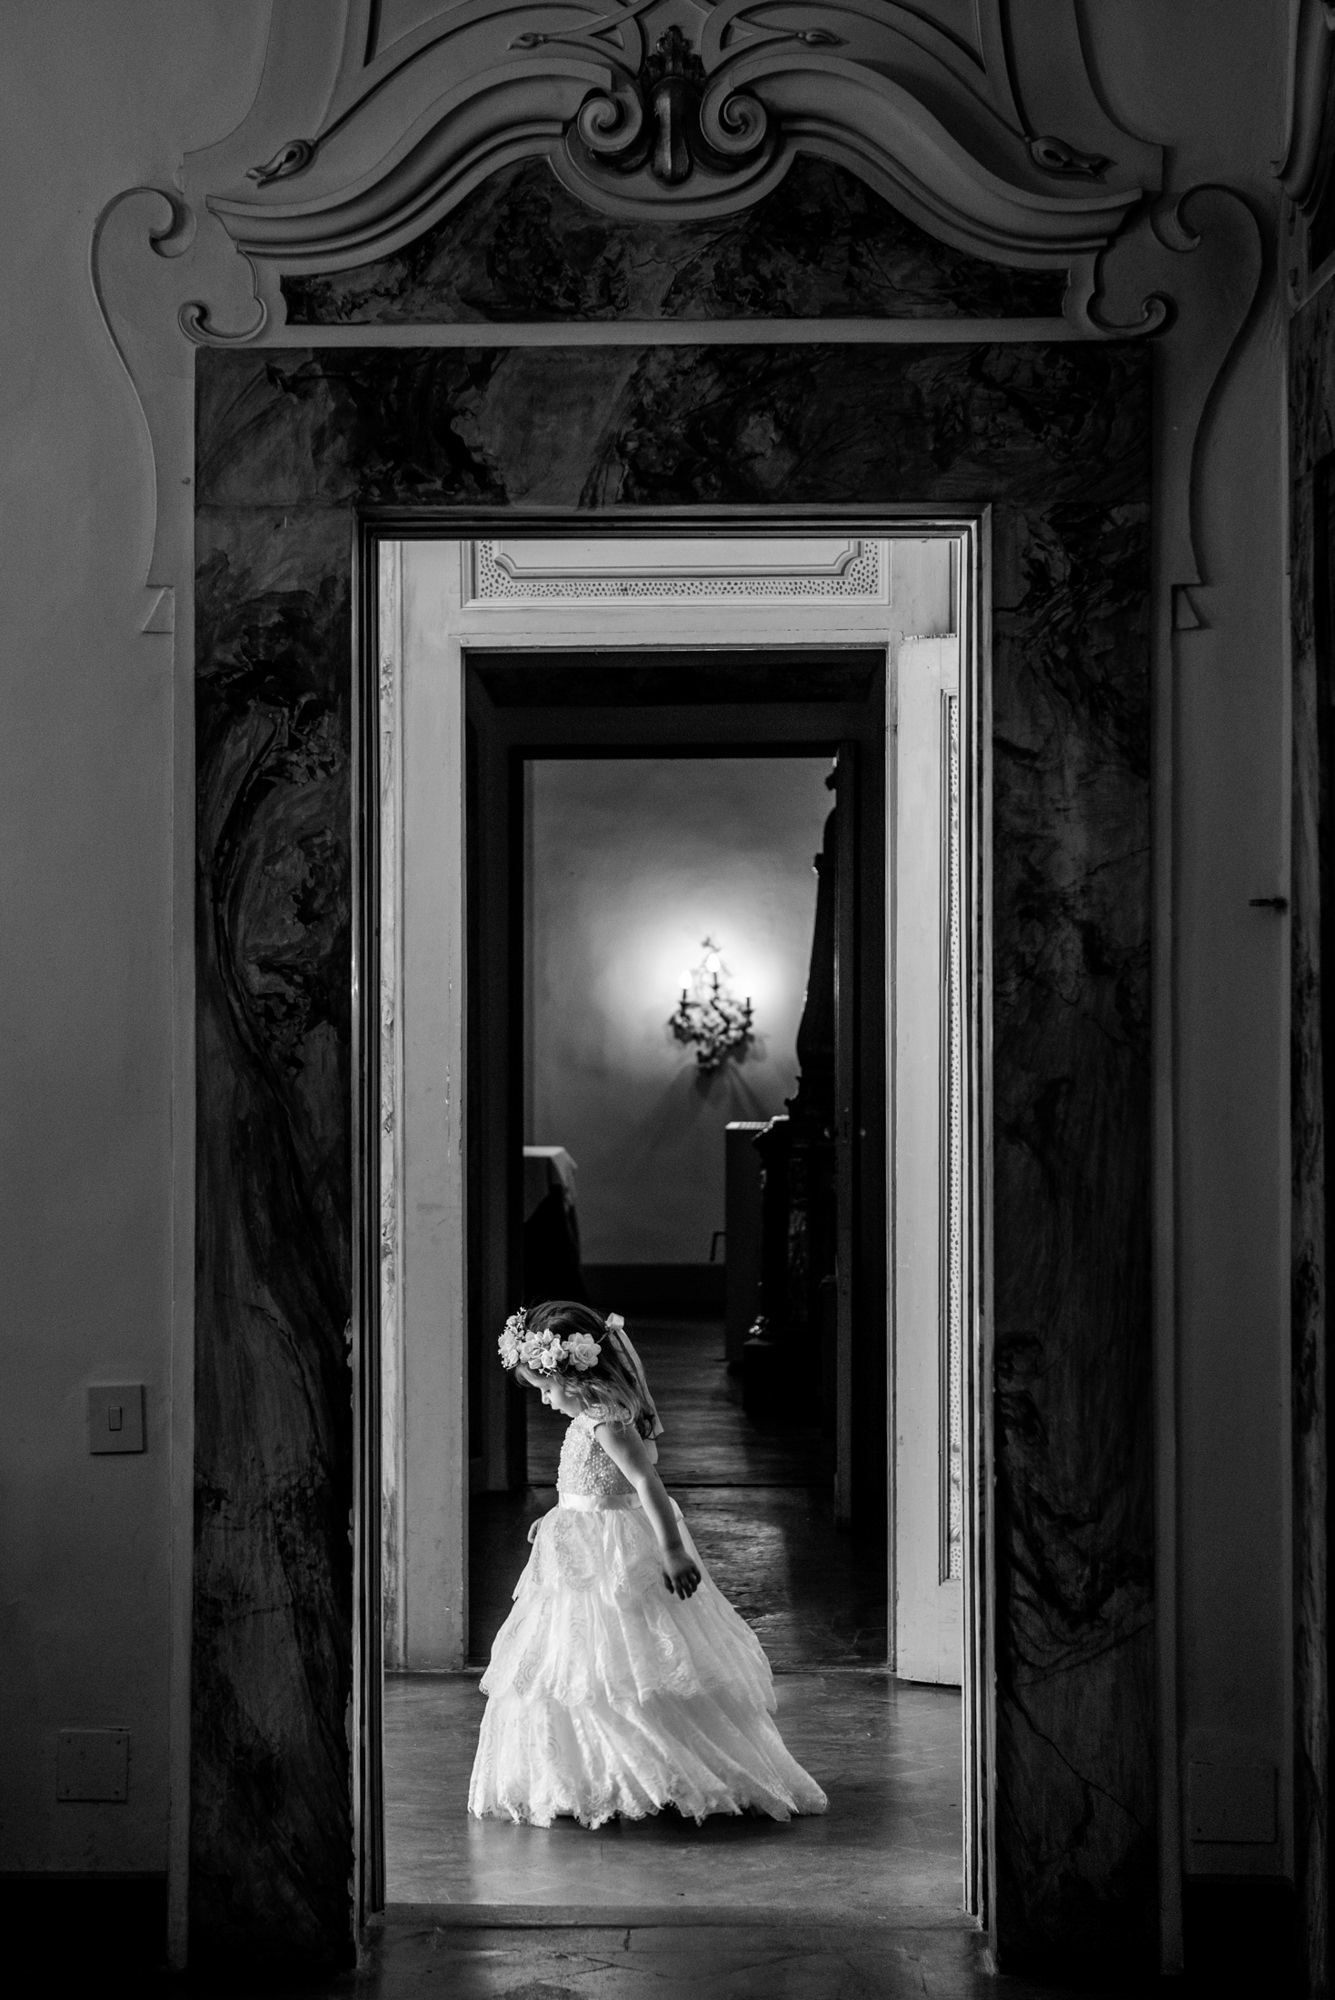 Little flowergirl framed in doorway by Morgan Lynn Razi